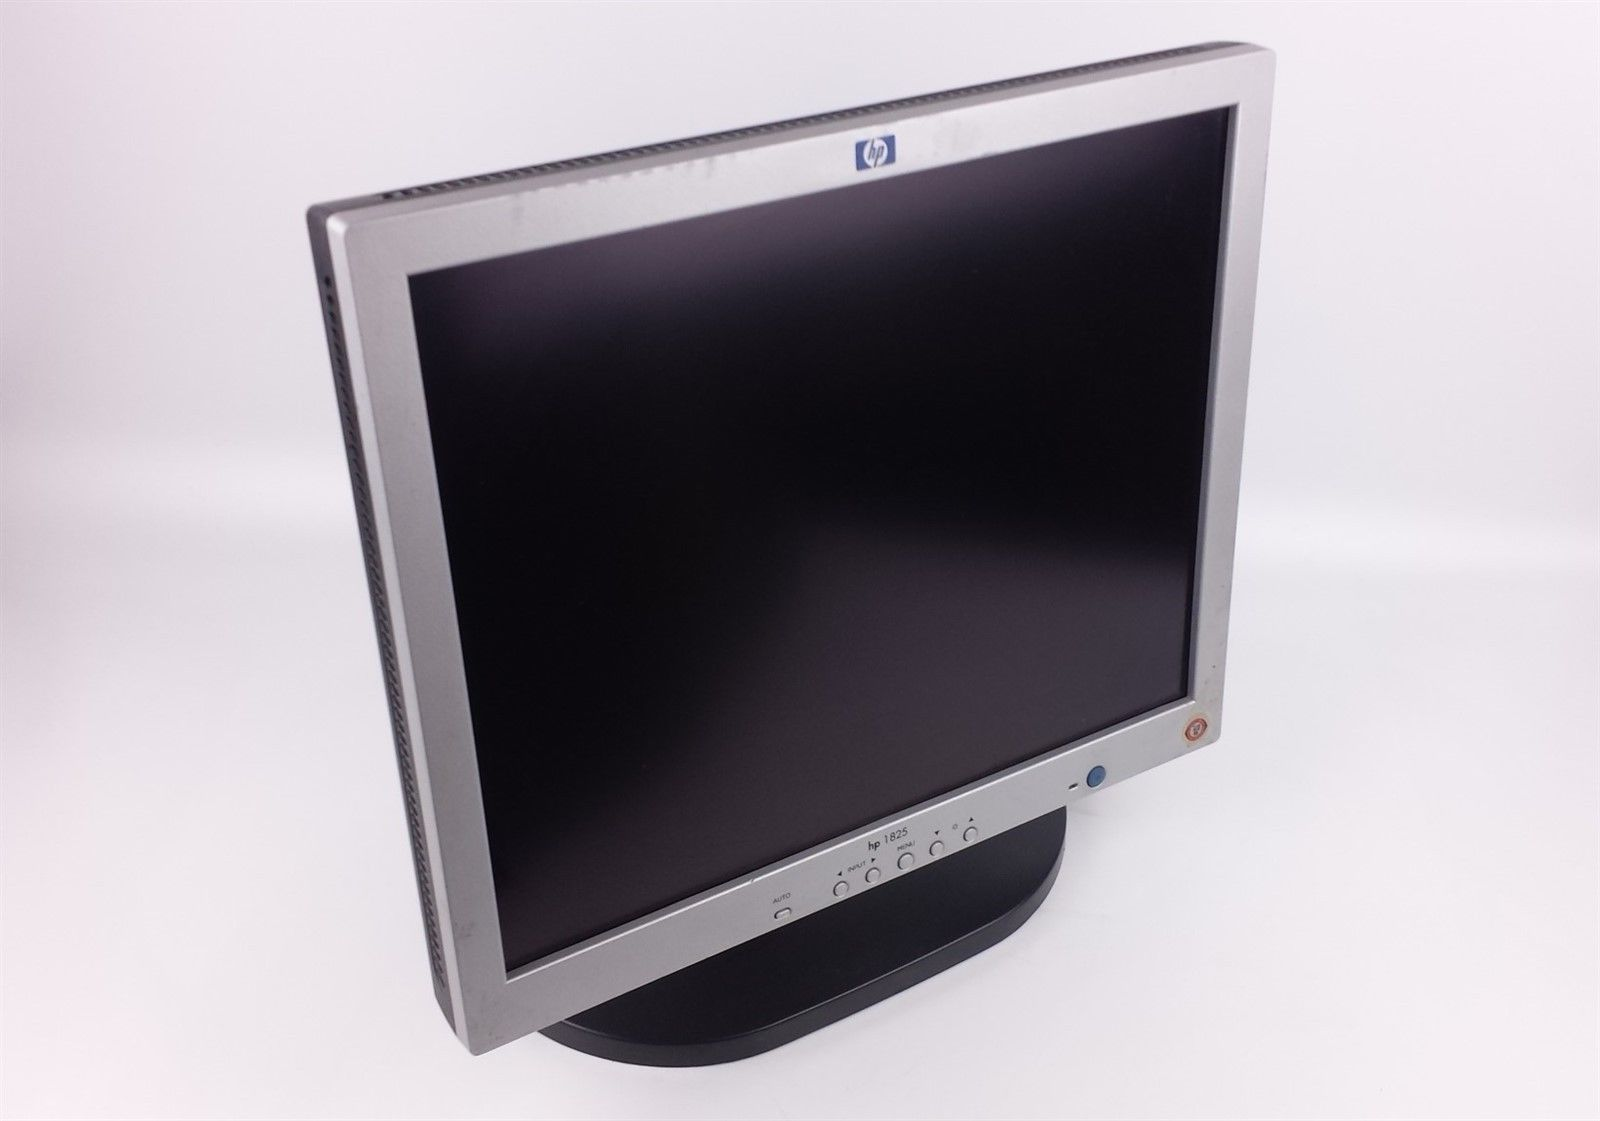 "HP 1825 LCD Flat Panel Display Monitor 18.1"" P9021A with Power and VGA Cord"